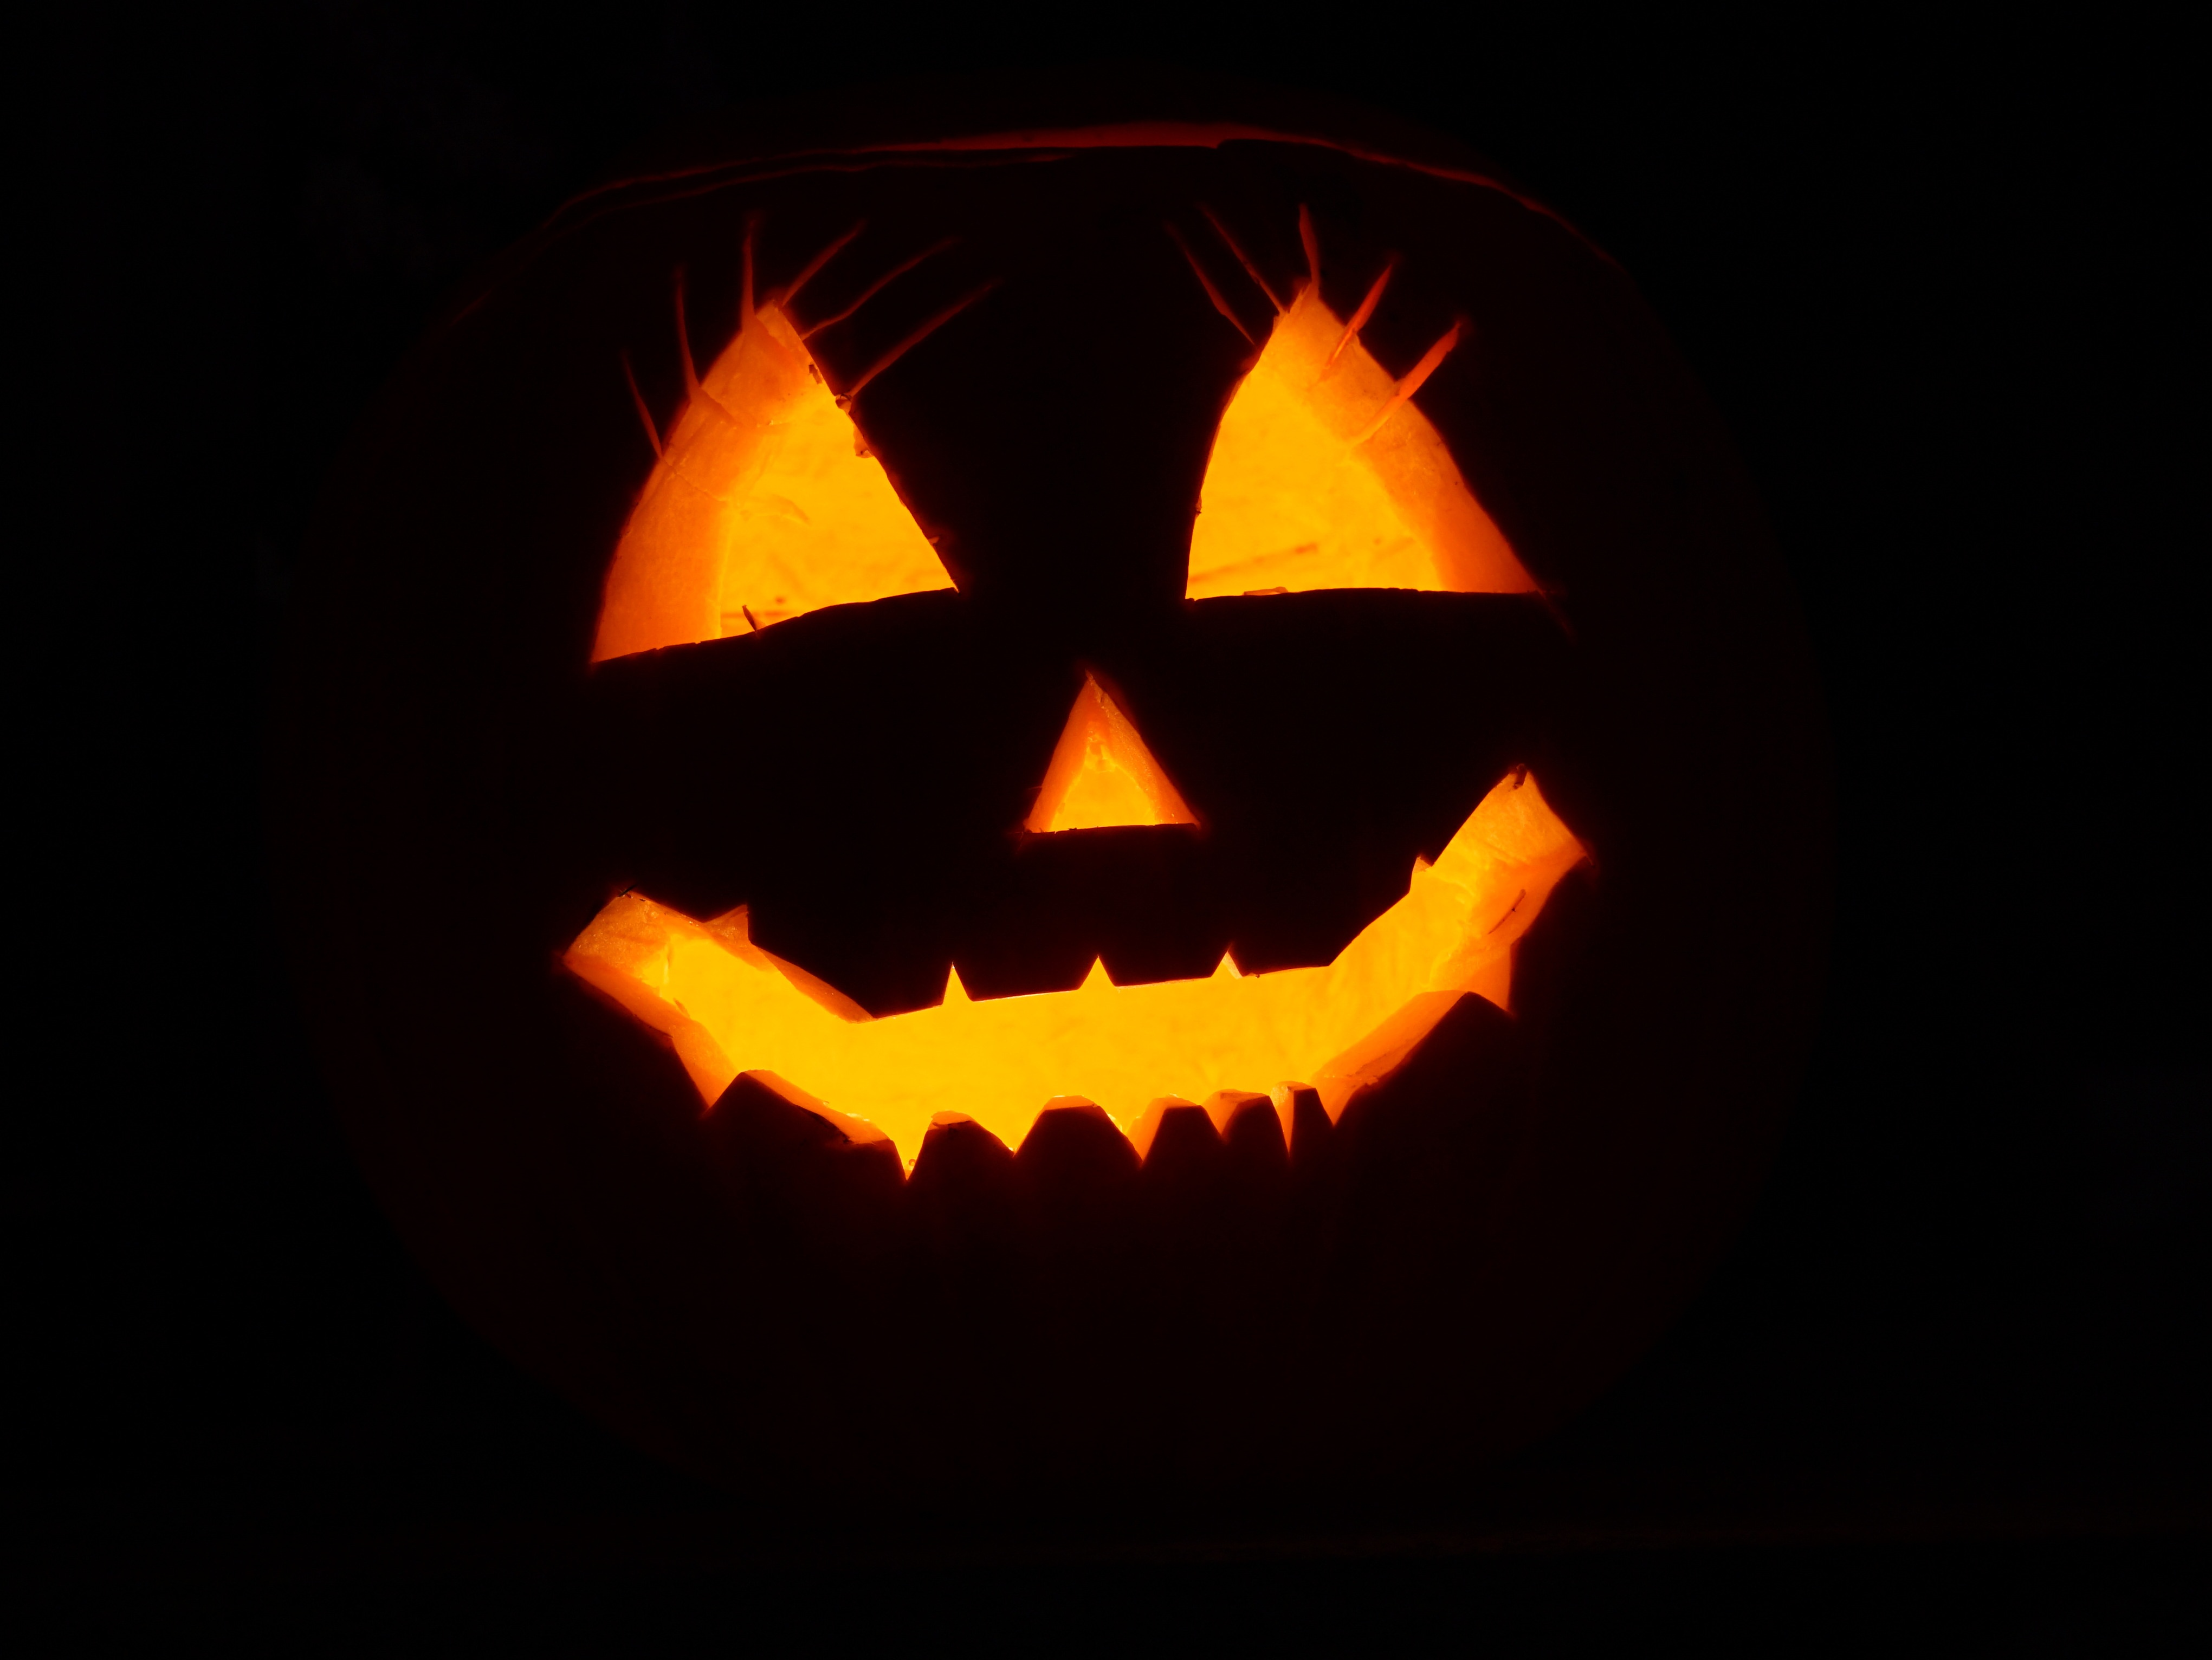 115352 download wallpaper Holidays, Halloween, Dark Background, Face screensavers and pictures for free